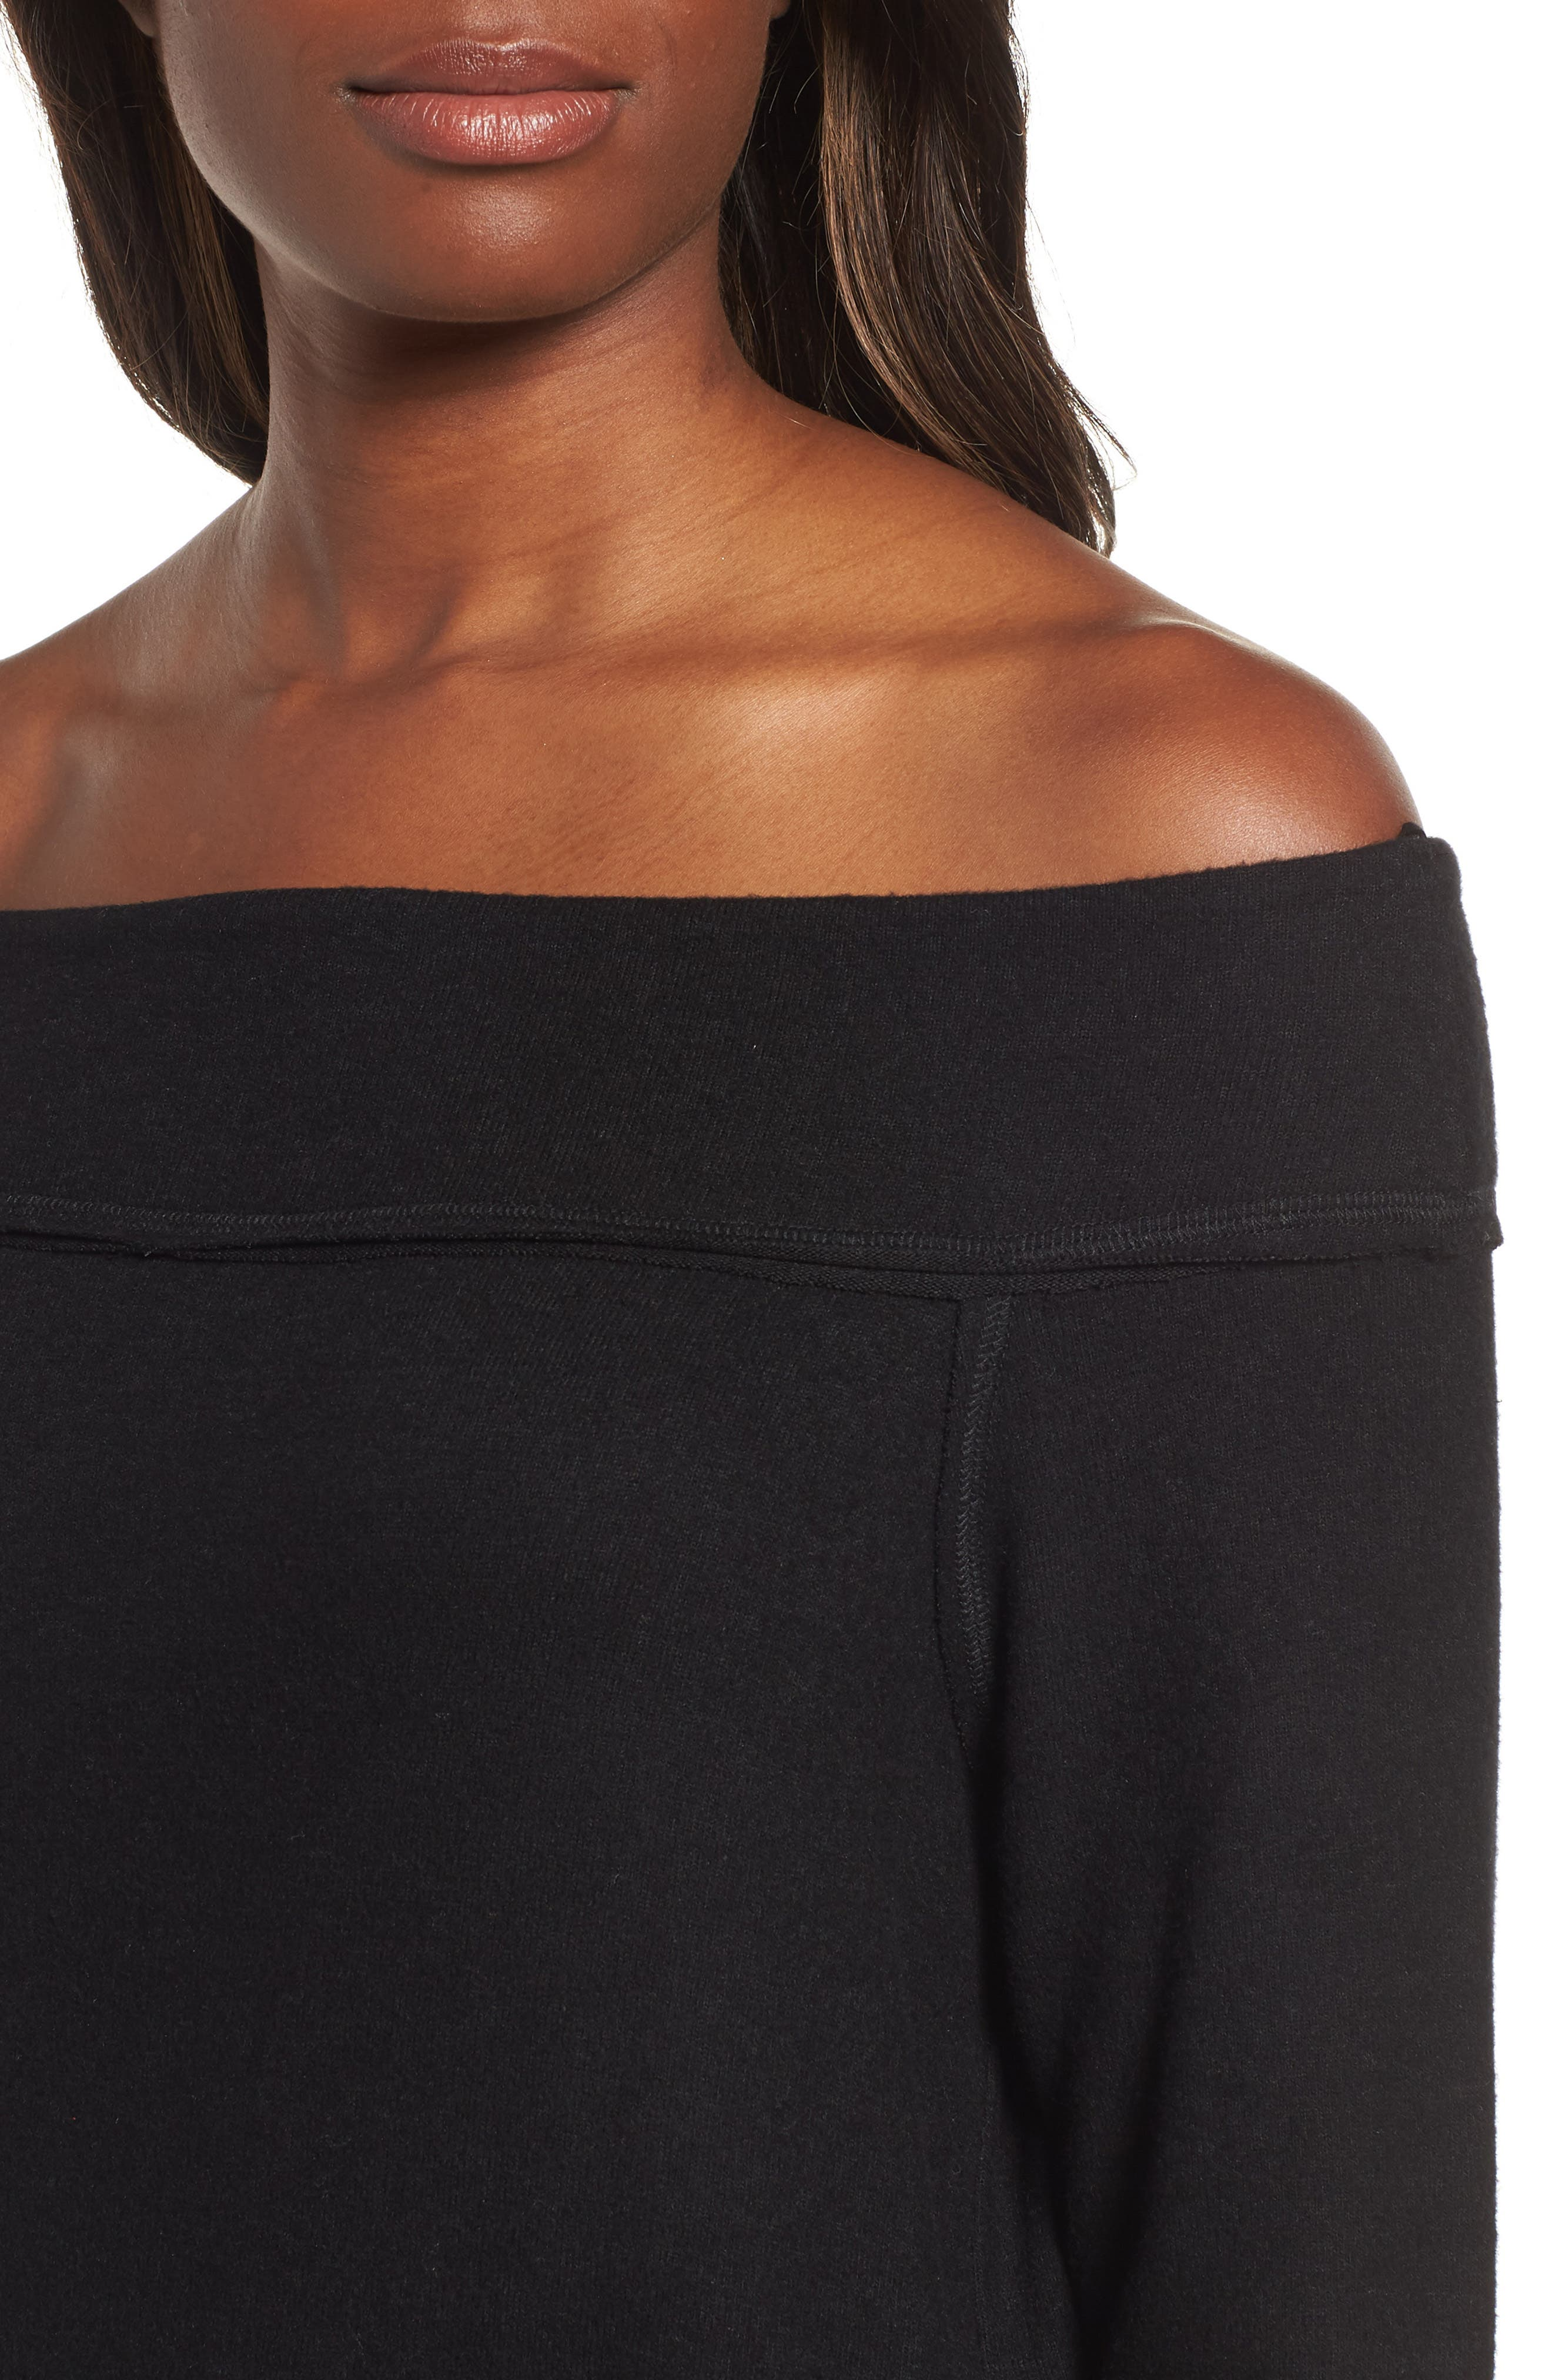 GIBSON,                             x Living in Yellow Mary Fleece Off the Shoulder Top,                             Alternate thumbnail 4, color,                             BLACK